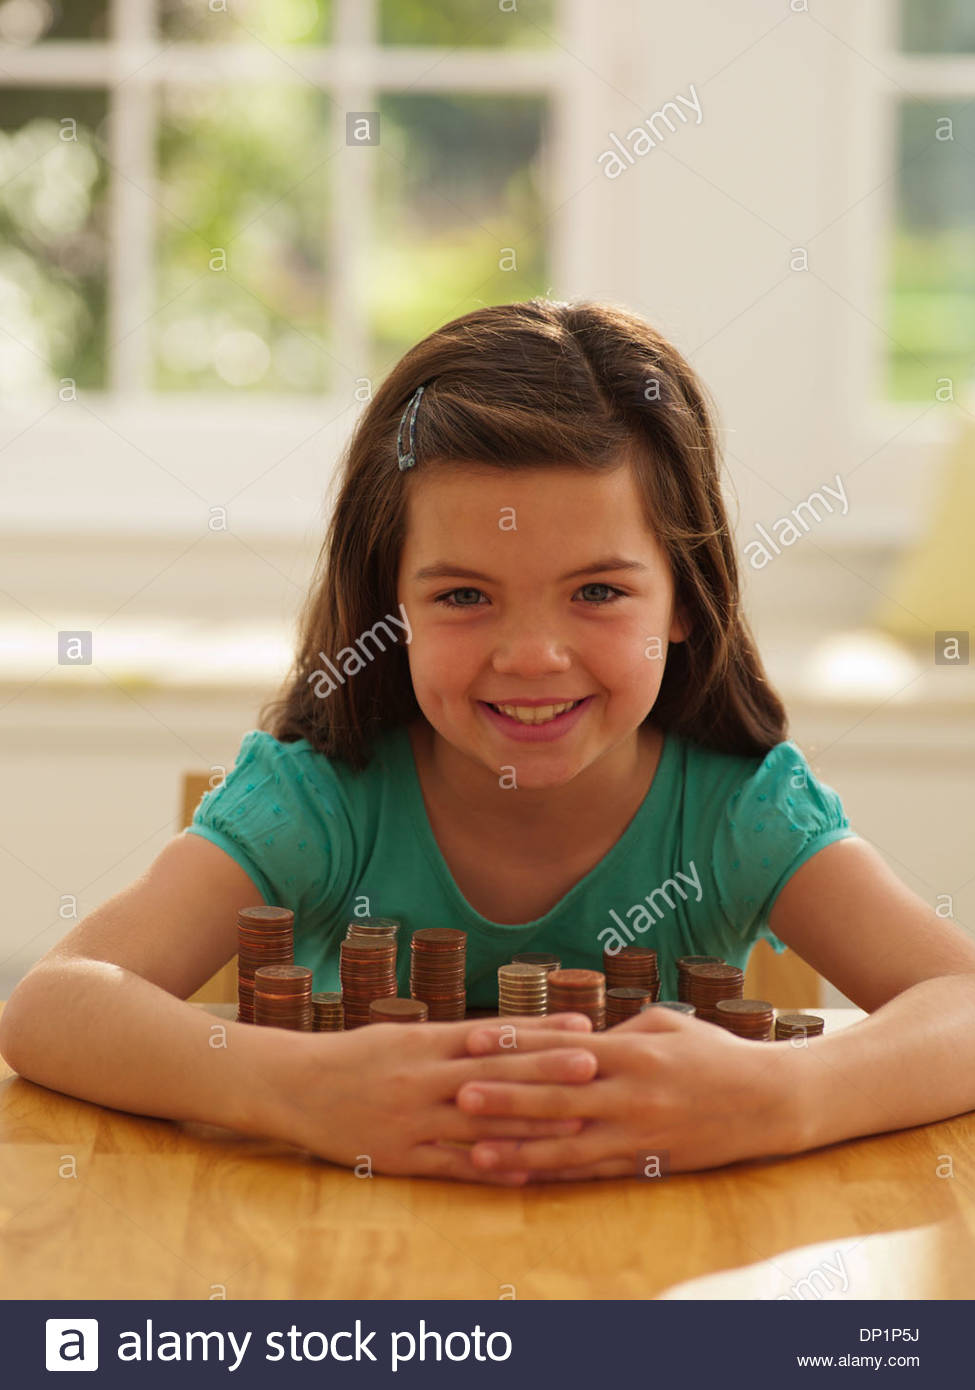 Smiling girl protecting stacks of coins - Stock Image